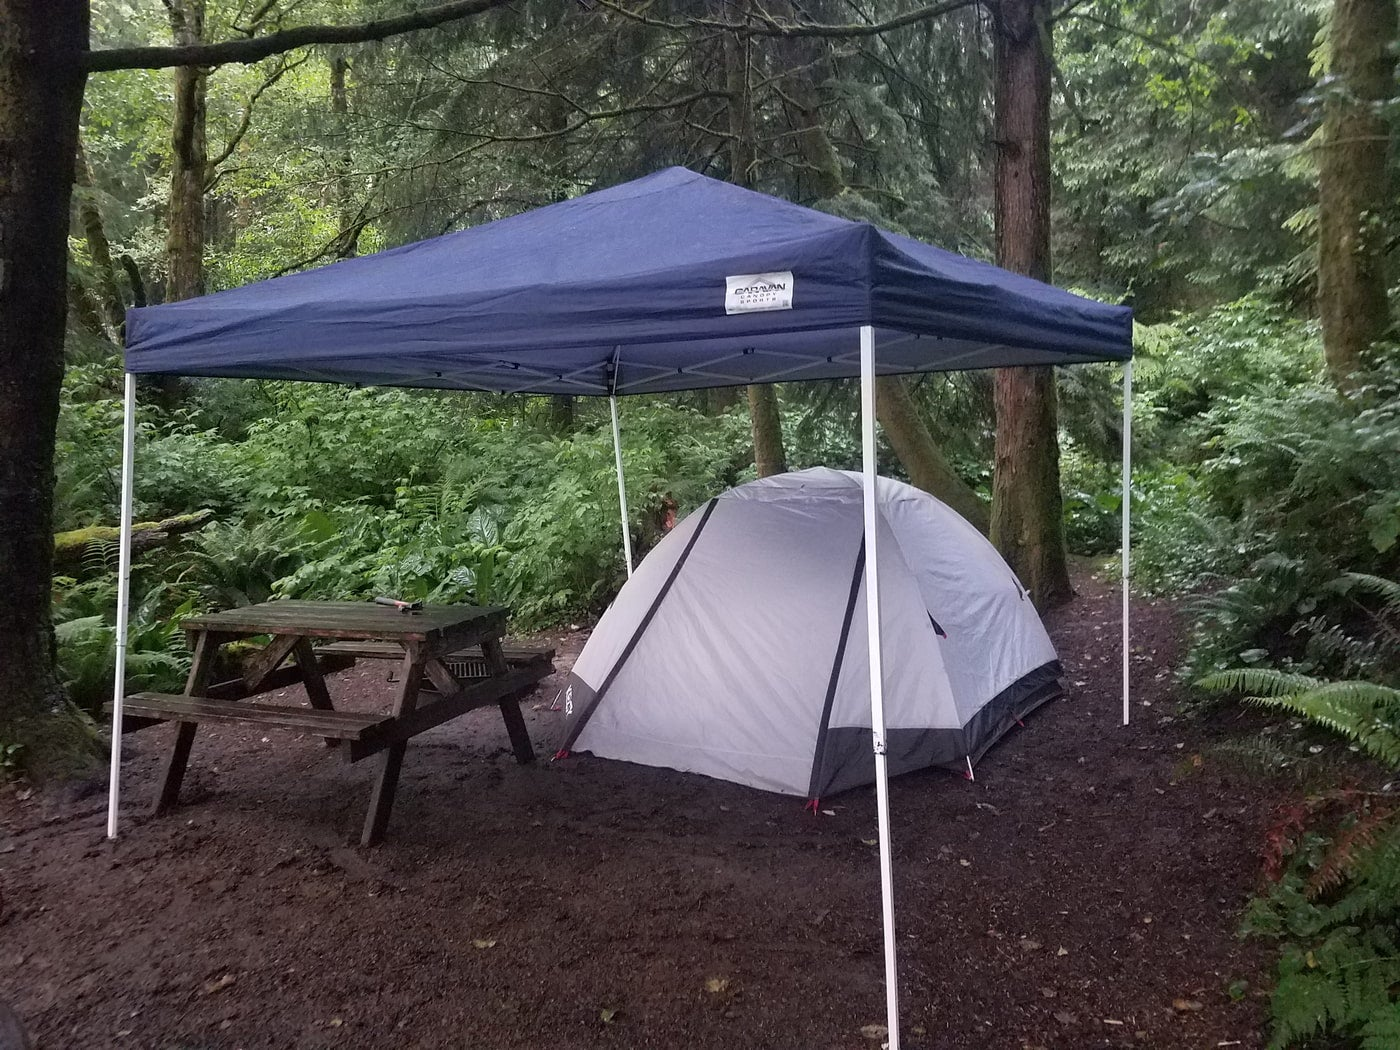 Tent under a canopy beside a picnic table at a forested campsite.